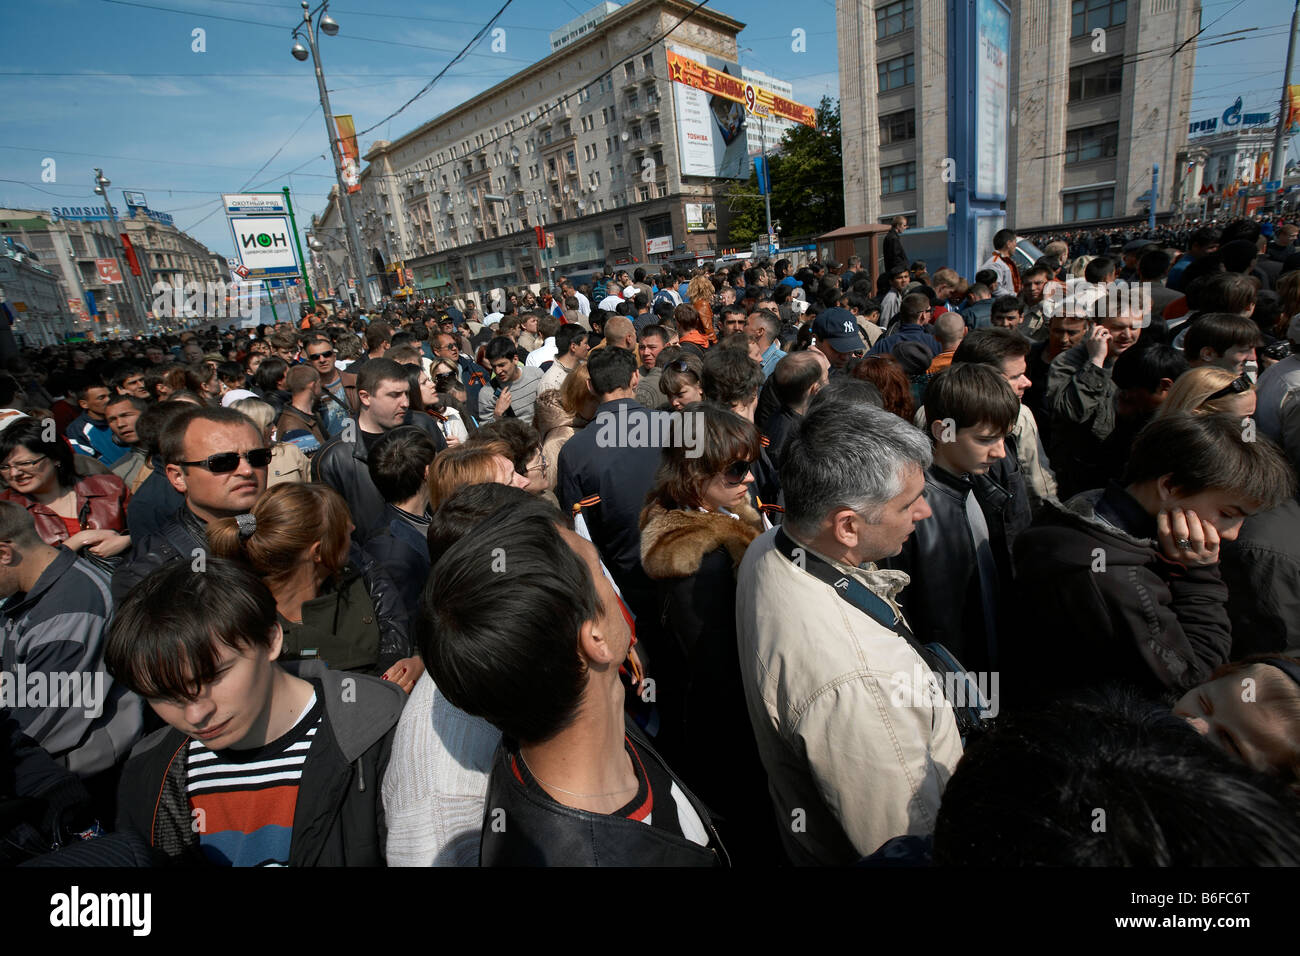 Crowds at Victory Day Celebration, Moscow Russia - Stock Image